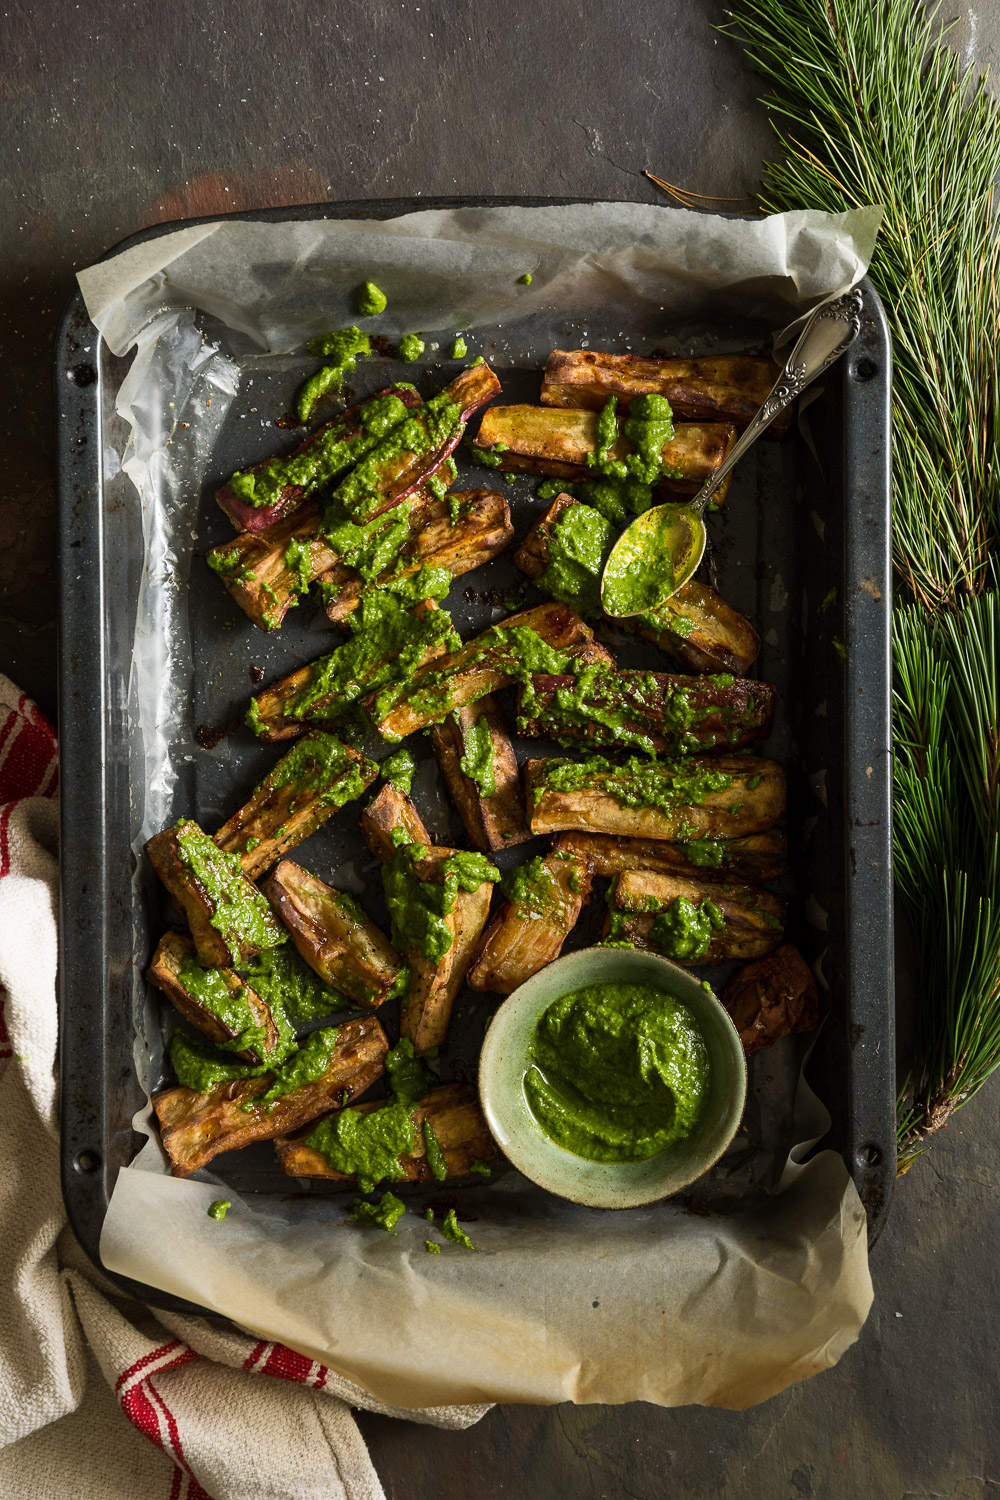 Roasted sweet potato with walnut and parsley pesto